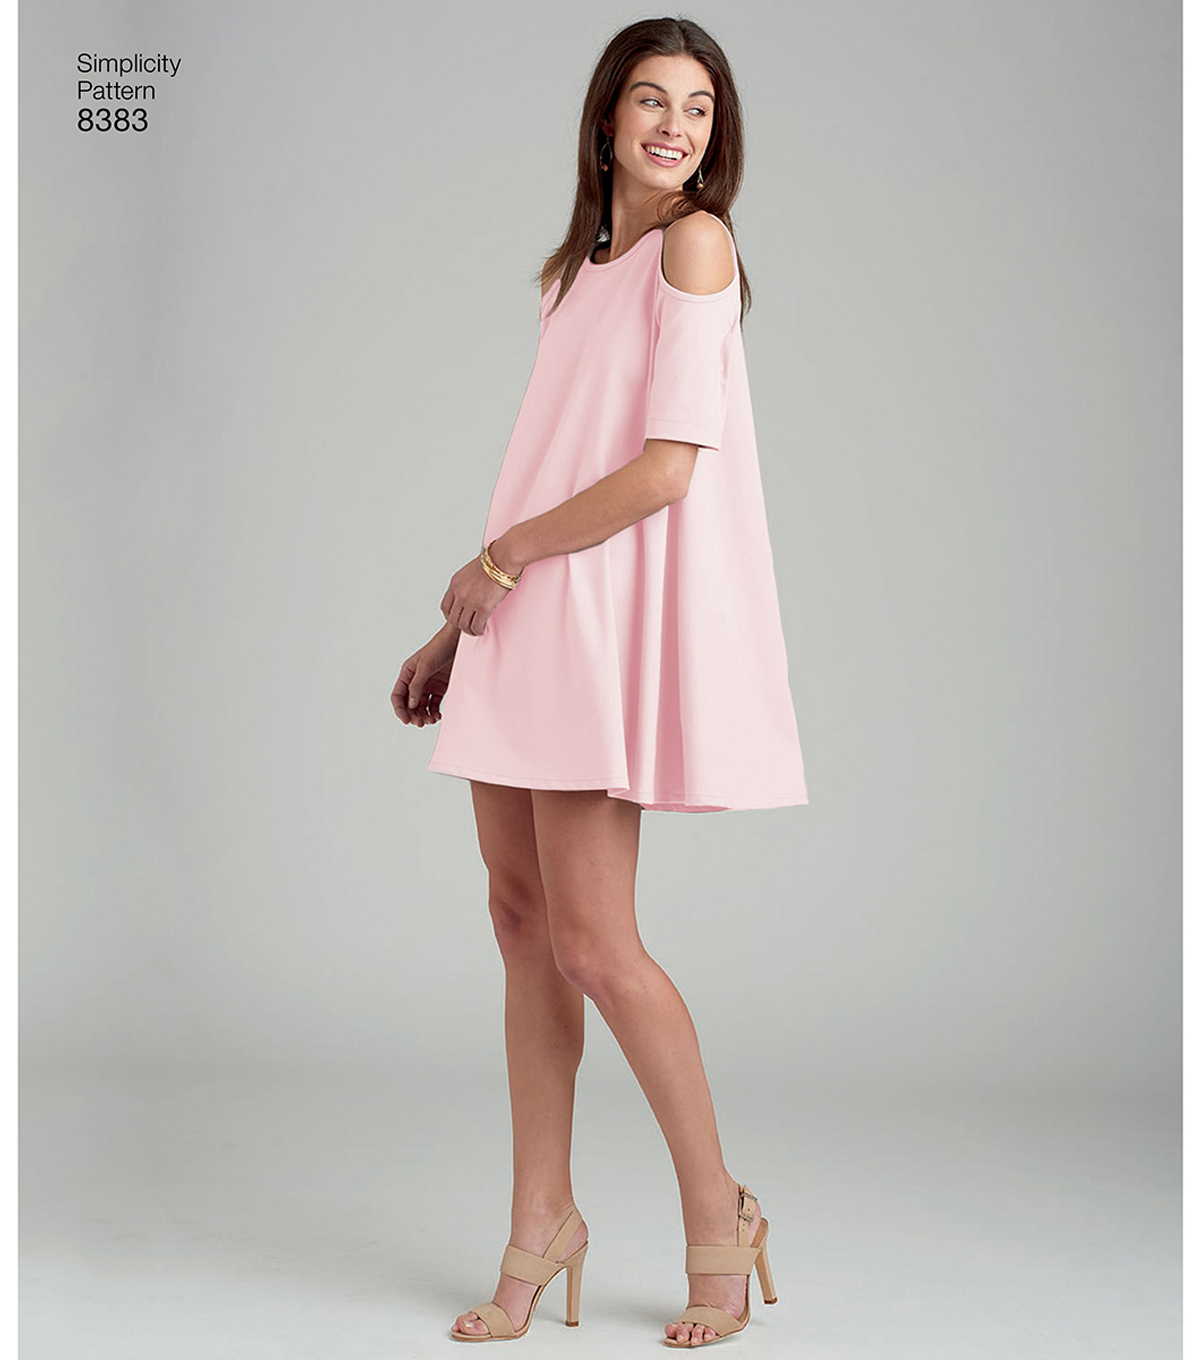 Simplicity Pattern 8383 Misses\u0027 Knit Trapeze Dress-Size R5 (14-22)